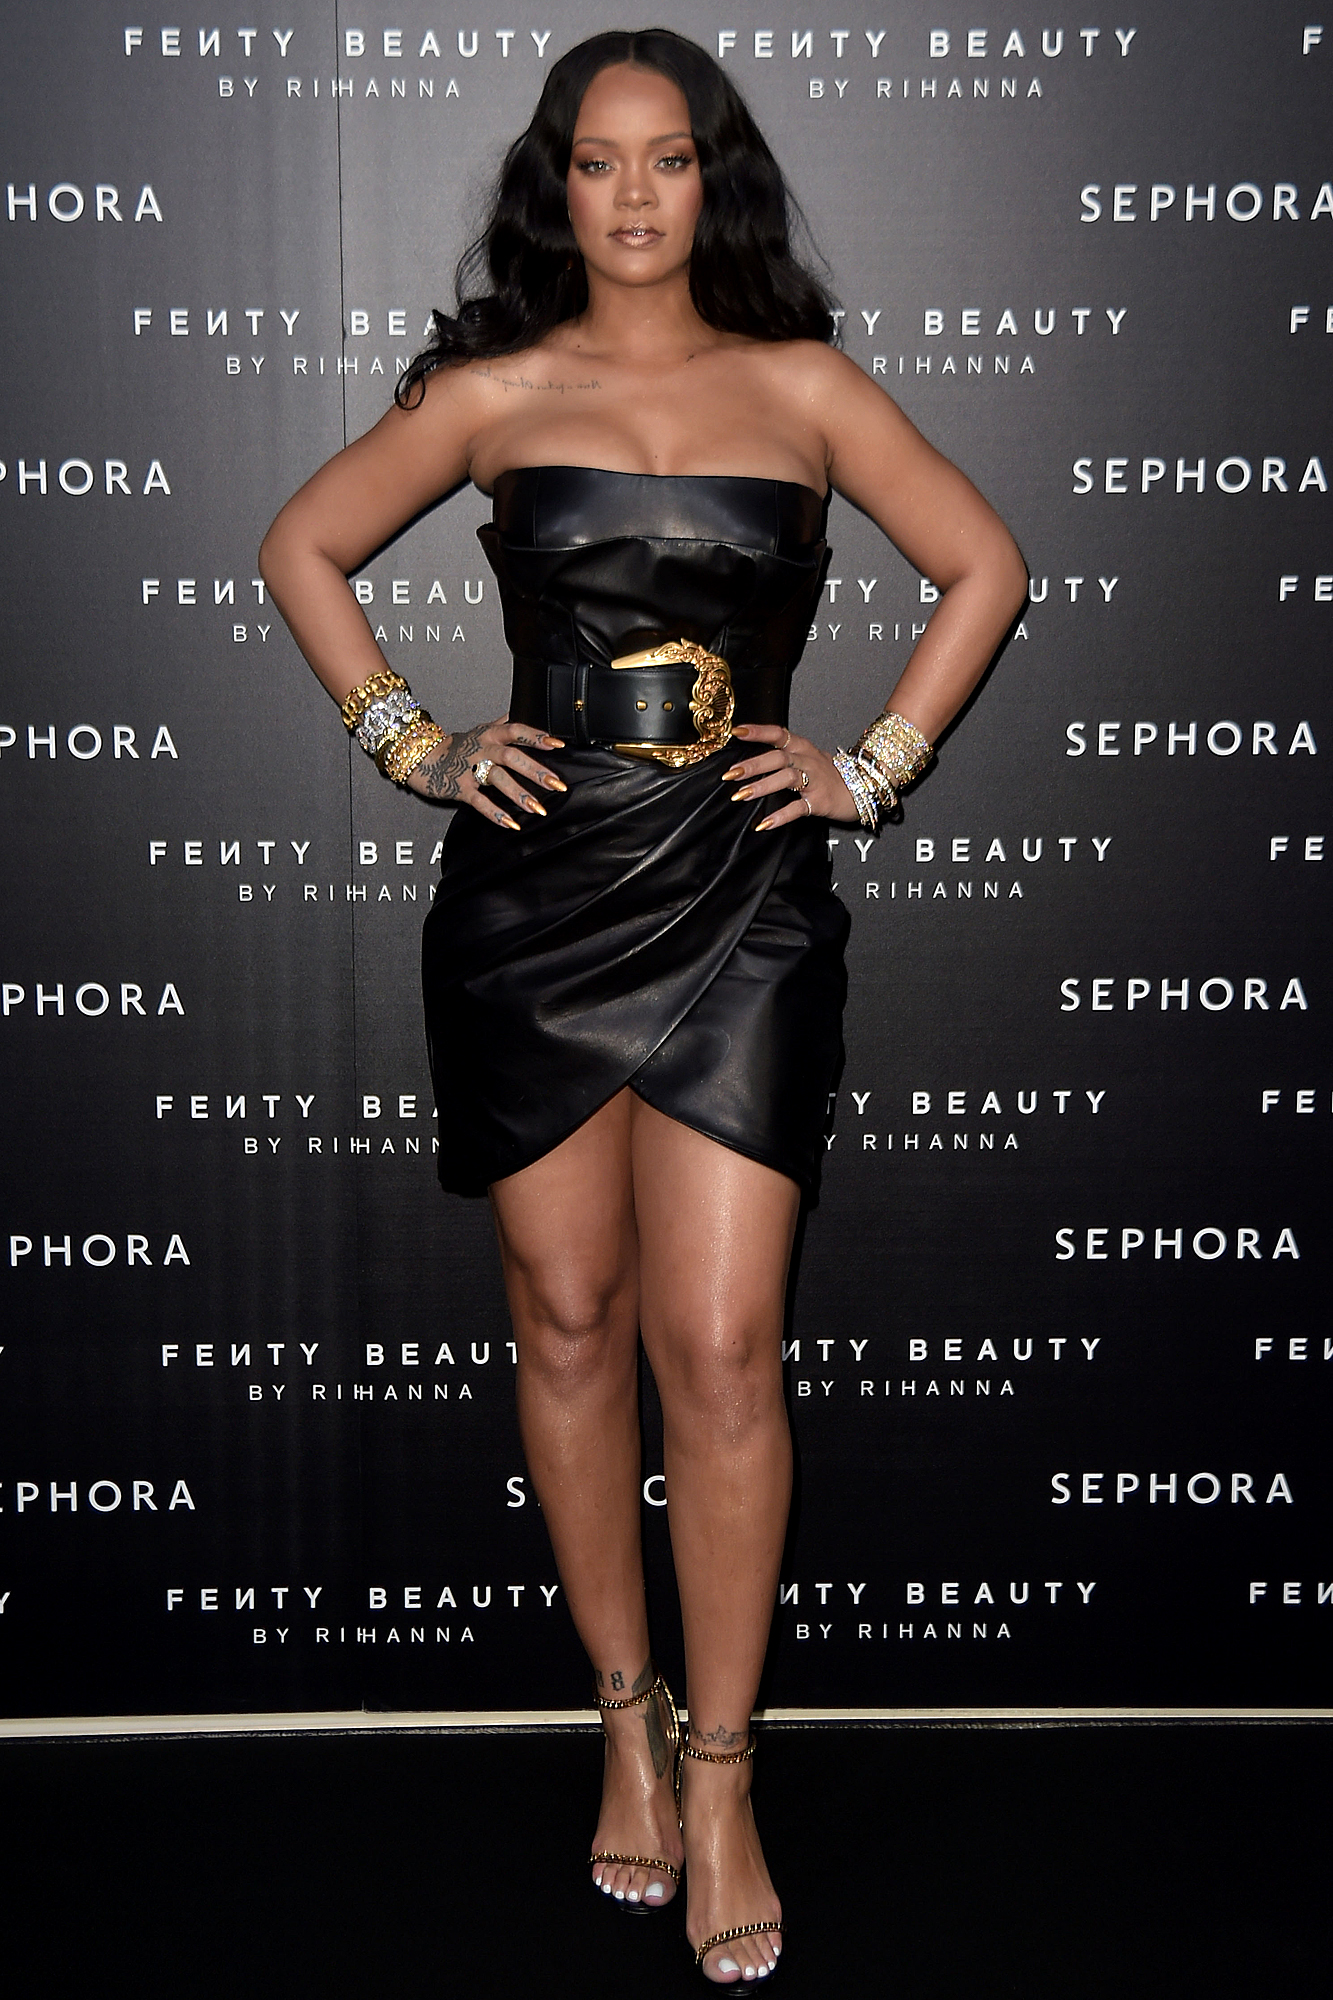 'Fenty' by Rihanna makeup launch, Milan, Italy - 05 Apr 2018